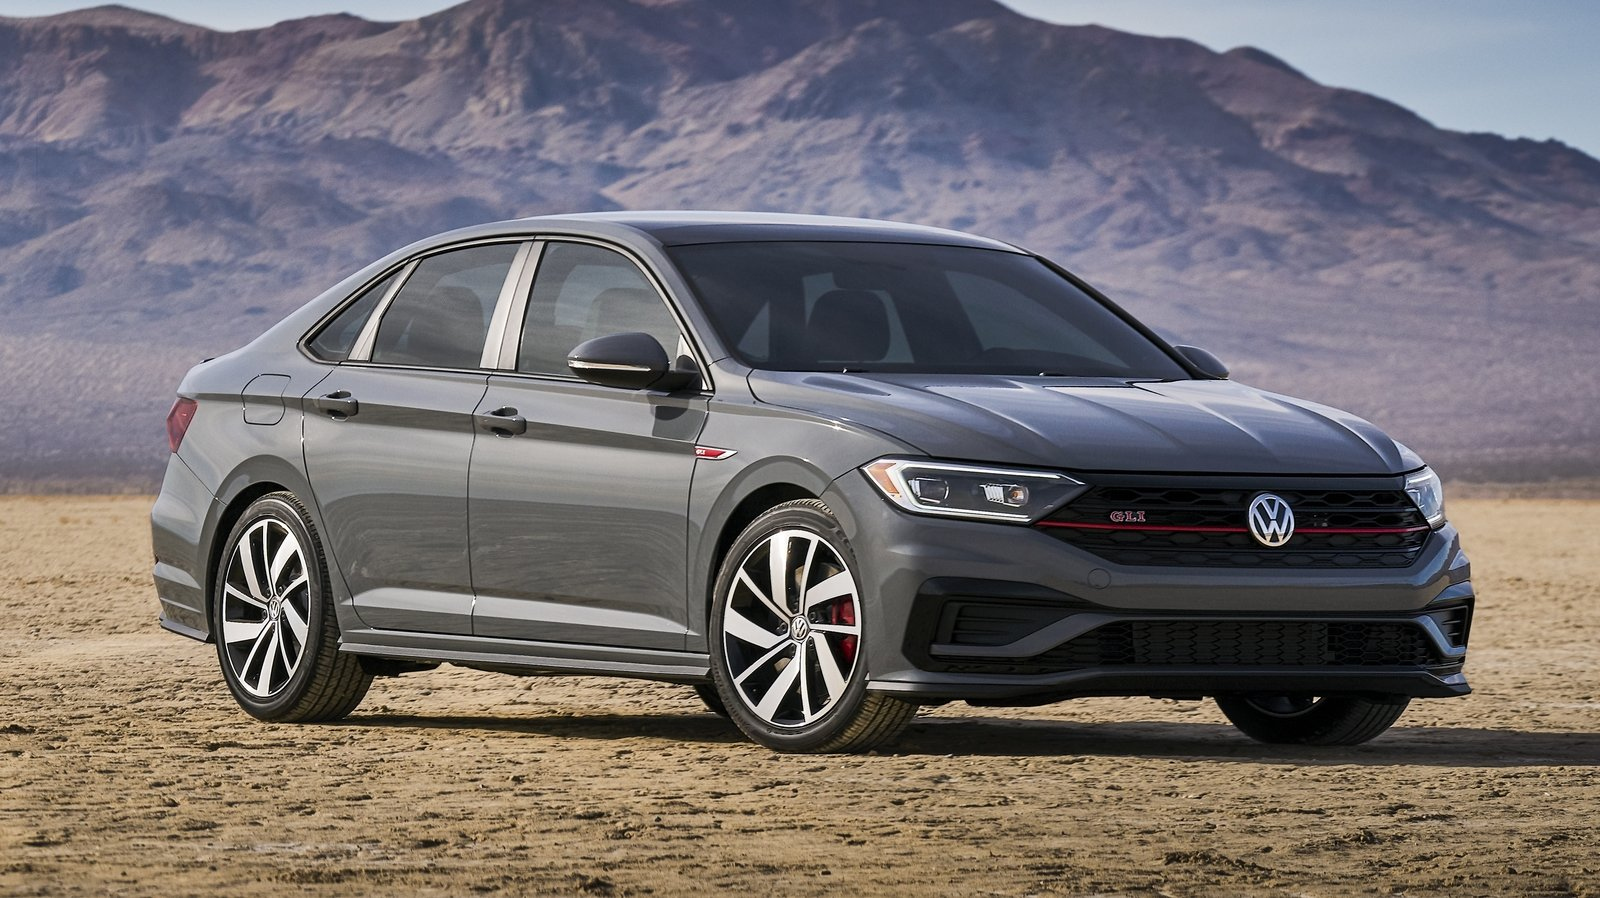 5 Reasons The 2020 Volkswagen Jetta GLI Needs A GTI Badge